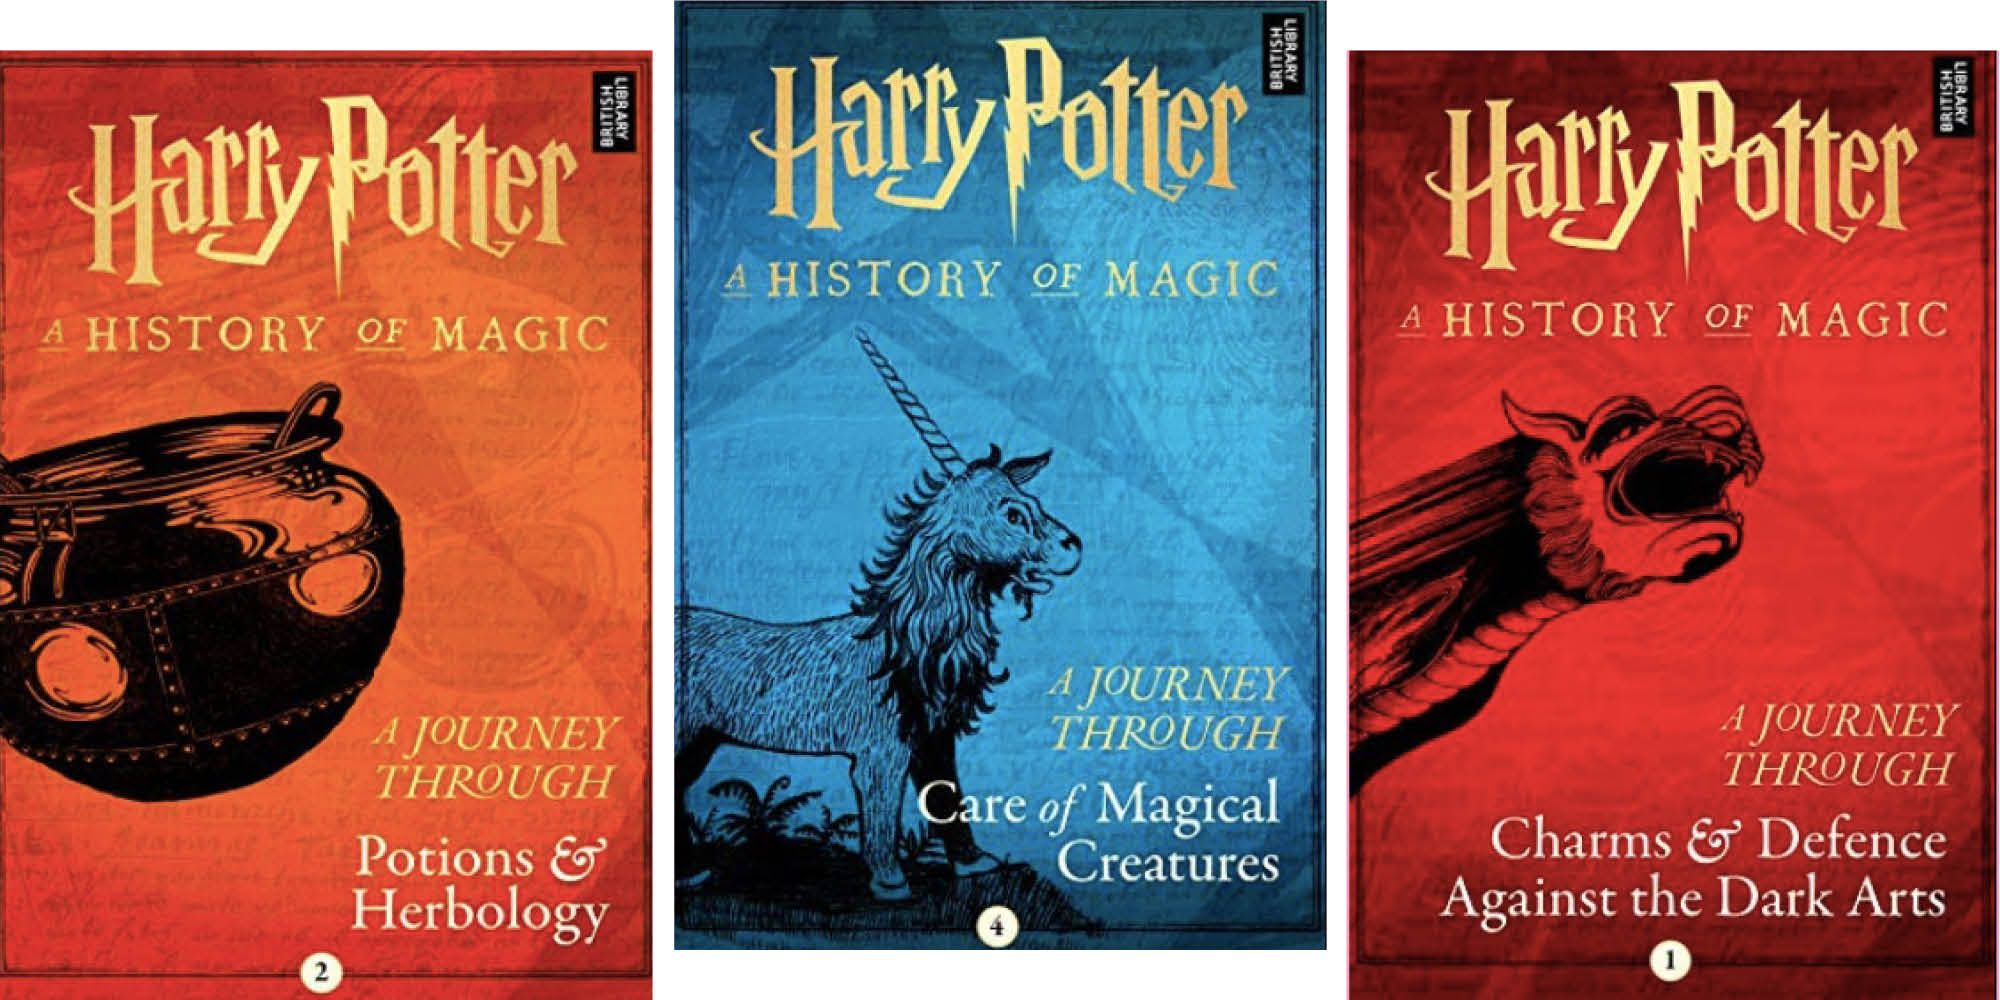 Jk Rowling Is Releasing 4 New Harry Potter Books Next Month